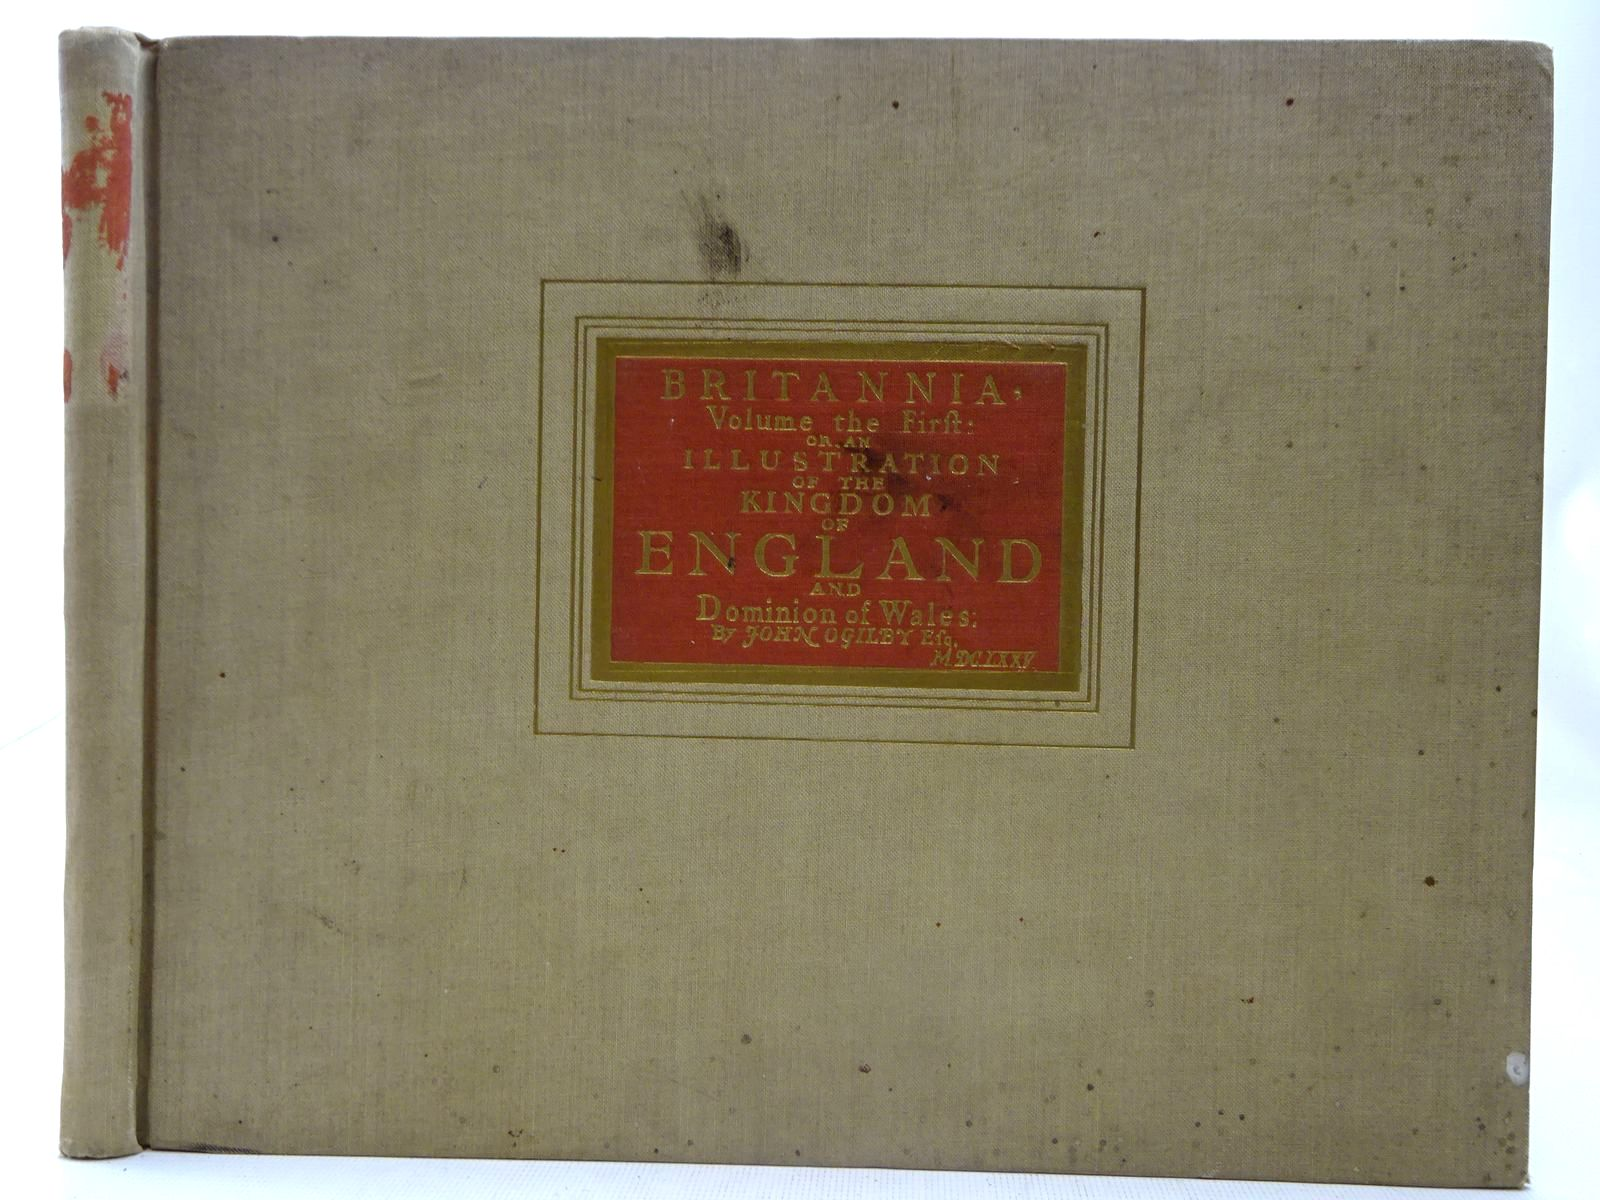 Photo of BRITANNIA, VOLUME THE FIRST: OR, AN ILLUSTRATION OF THE KINGDOM OF ENGLAND AND DOMINION OF WALES written by Ogilby, John illustrated by Ogilby, John published by Alexander Duckham & Co. Ltd. (STOCK CODE: 2127625)  for sale by Stella & Rose's Books